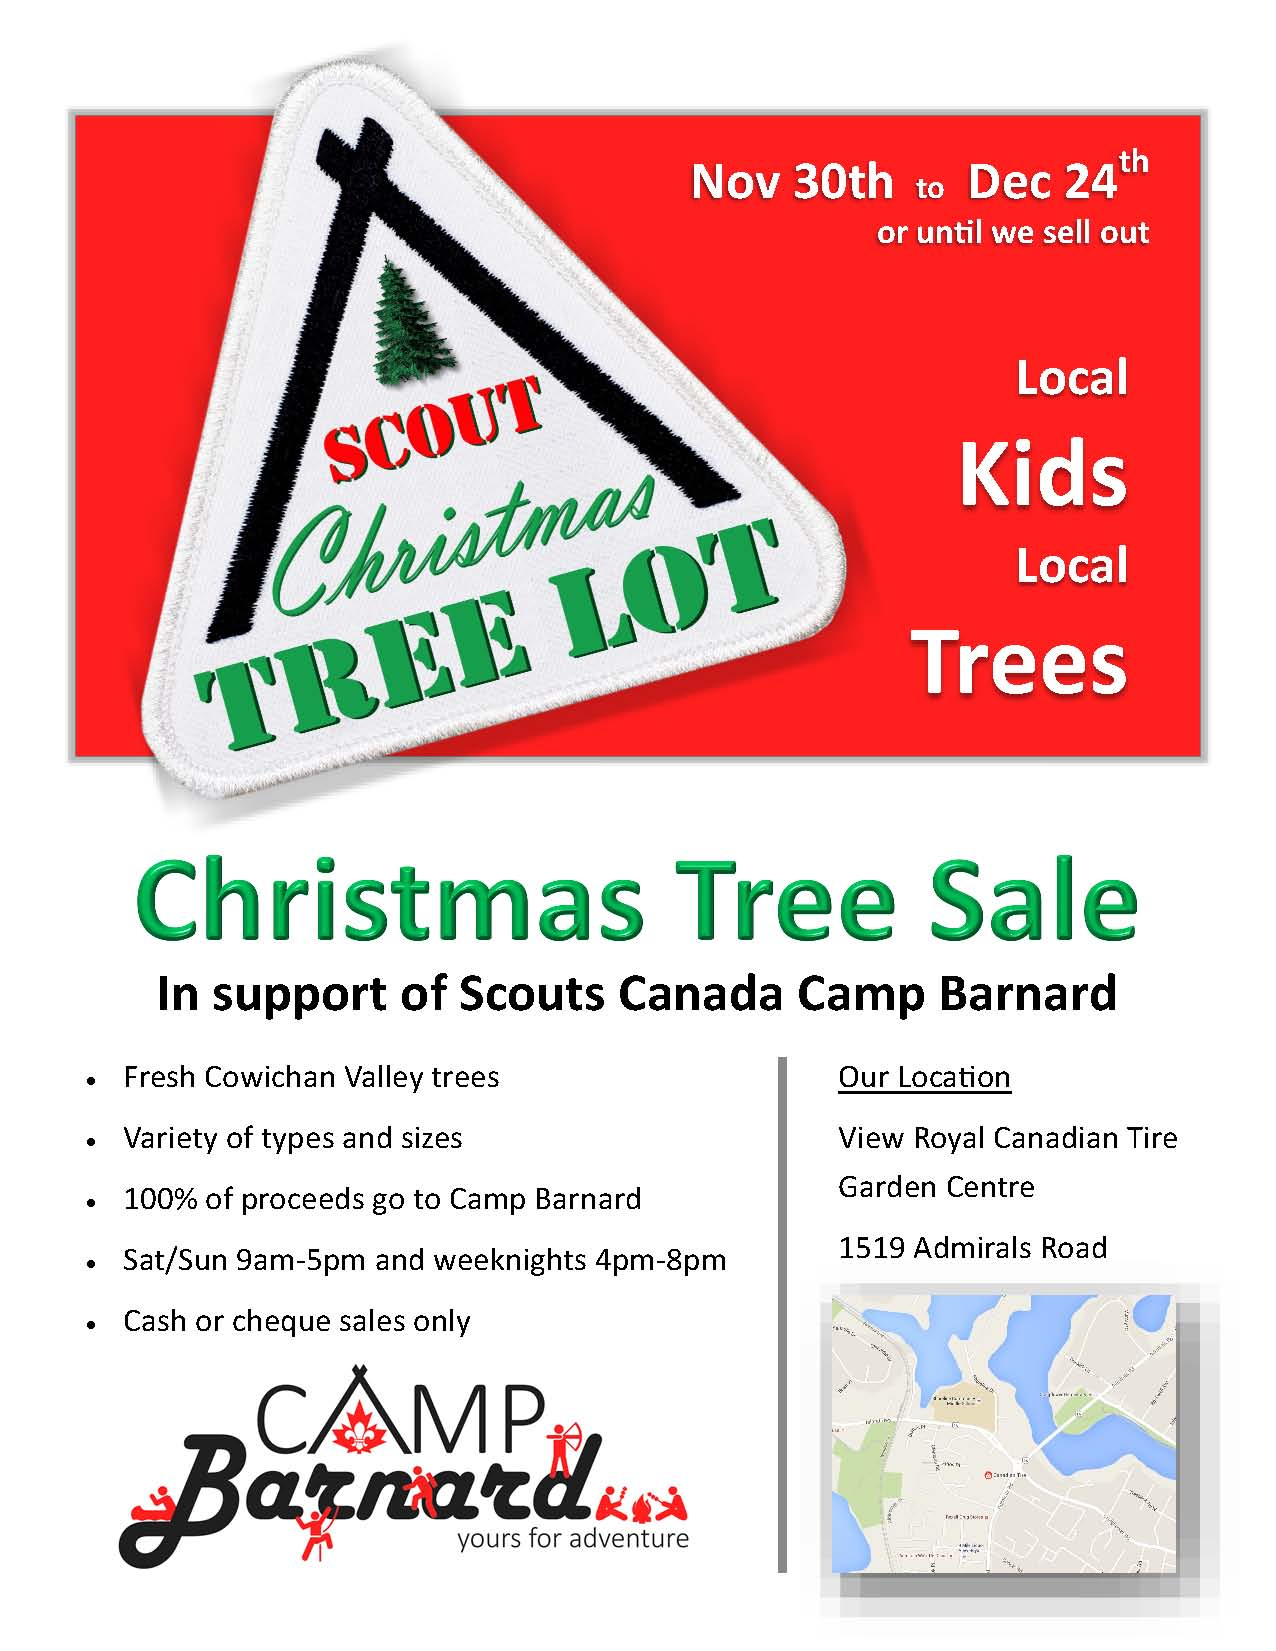 Events The Zone 91 3 To Install New Circuits For Christmas Lights Root Electric Services View Royal Canadian Tire Garden Centre At 1519 Admirals Victoria Bc Scouts Canada Camp Barnard Tree